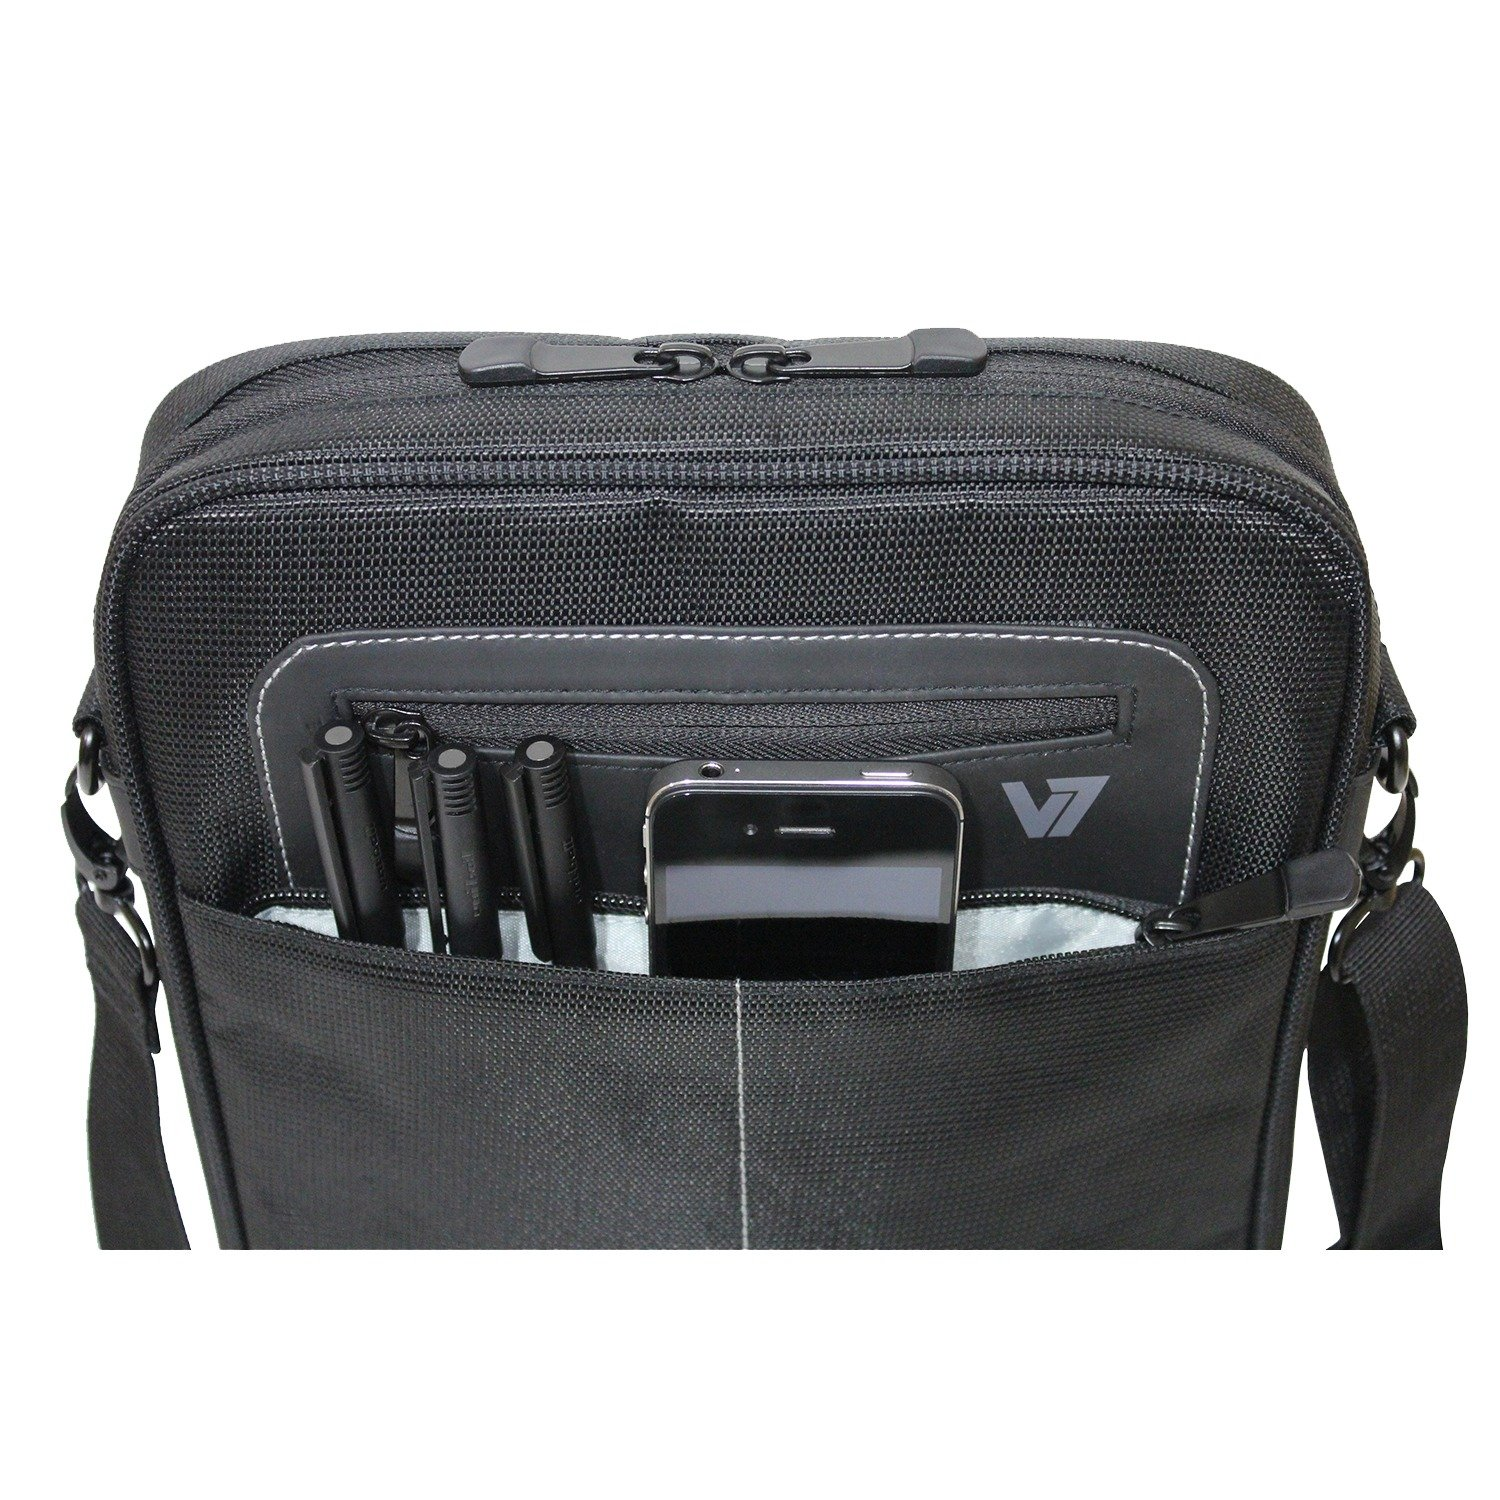 Amazon.com: V7 Cityline Messenger Bag for iPads and Tablets Upto ...